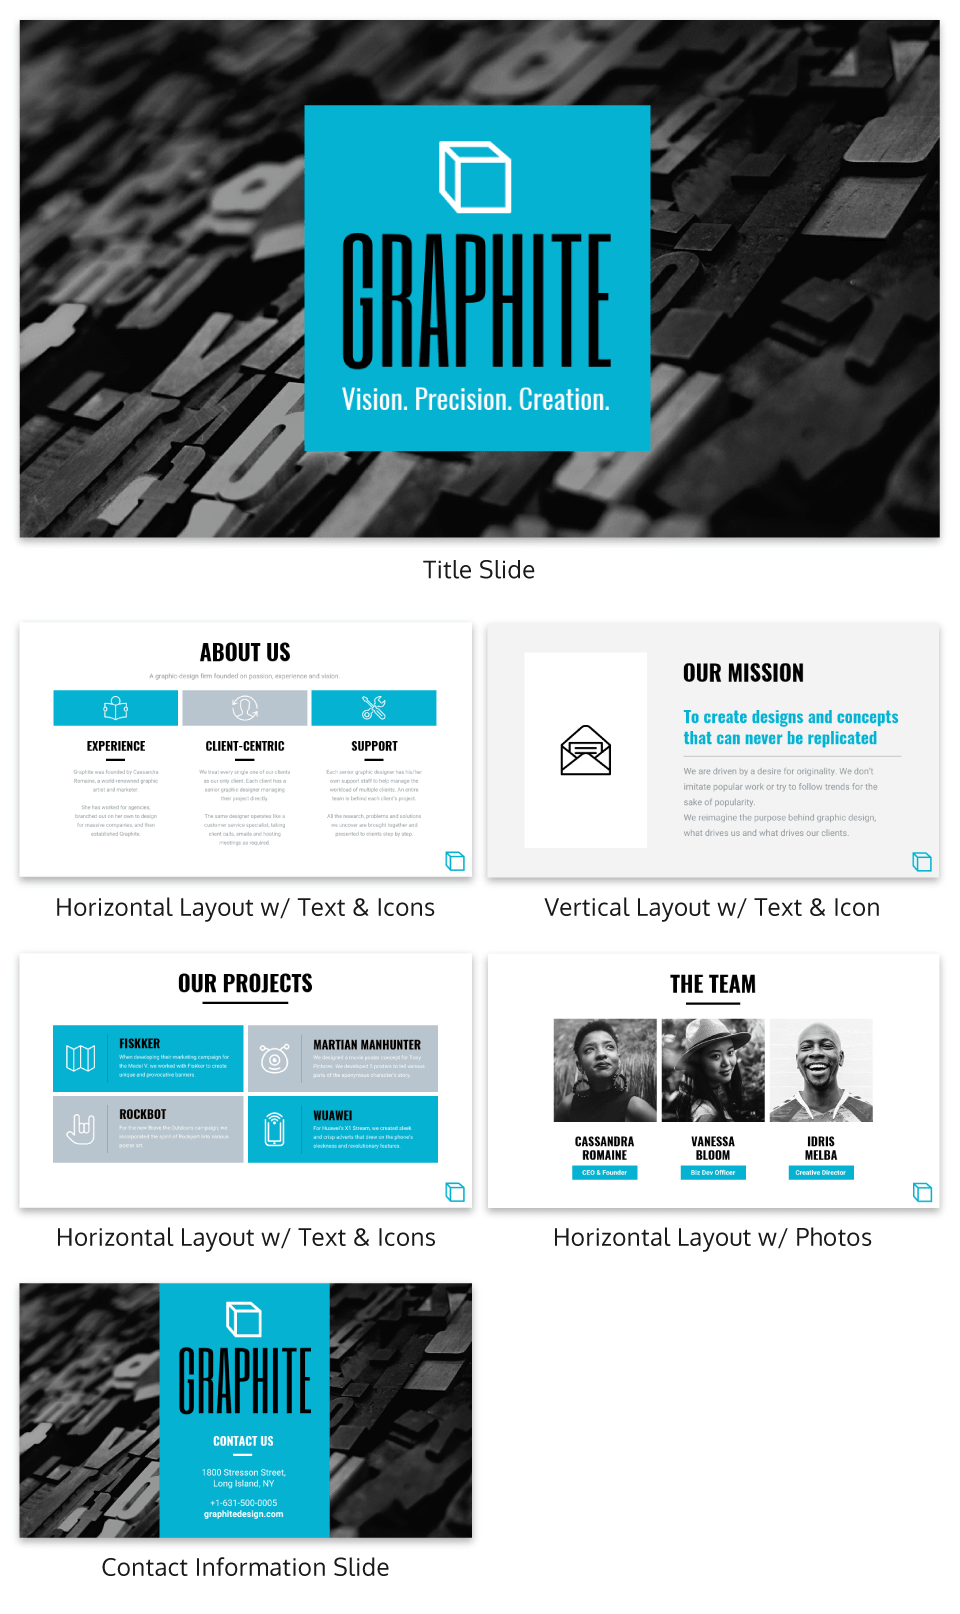 20 presentation templates and design best practices to keep your